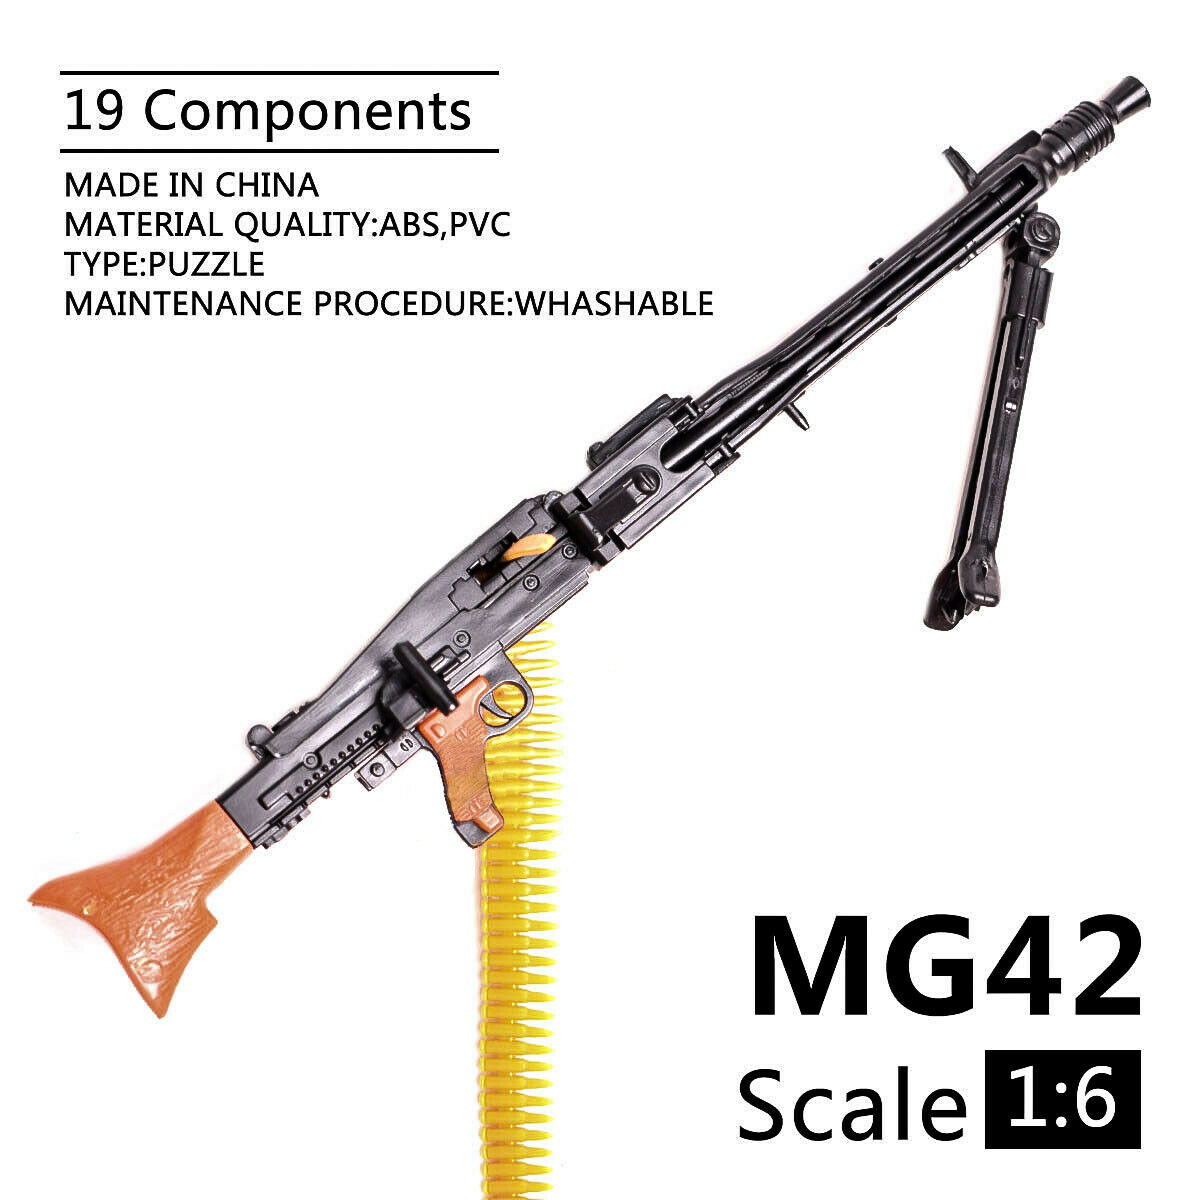 1/6 Scale MG42 Toy Gun Model Assembled Puzzles Building Bricks Gun Soldier Machine Gun Fit 12